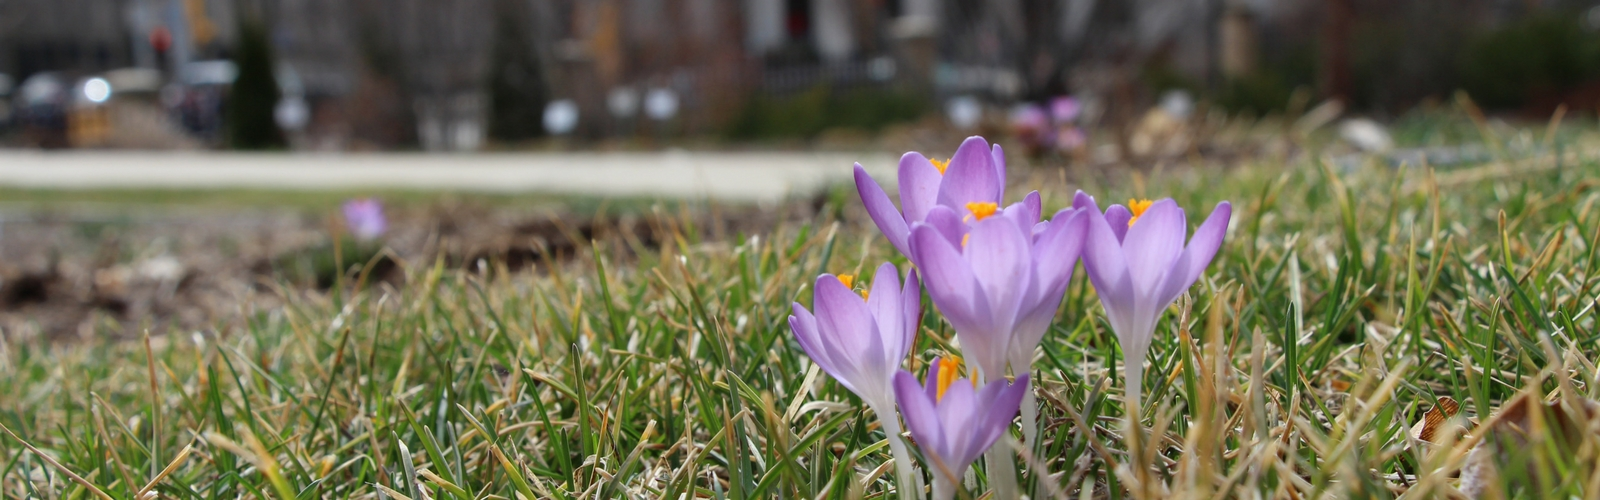 grassy field with two purple flowers starting to grow